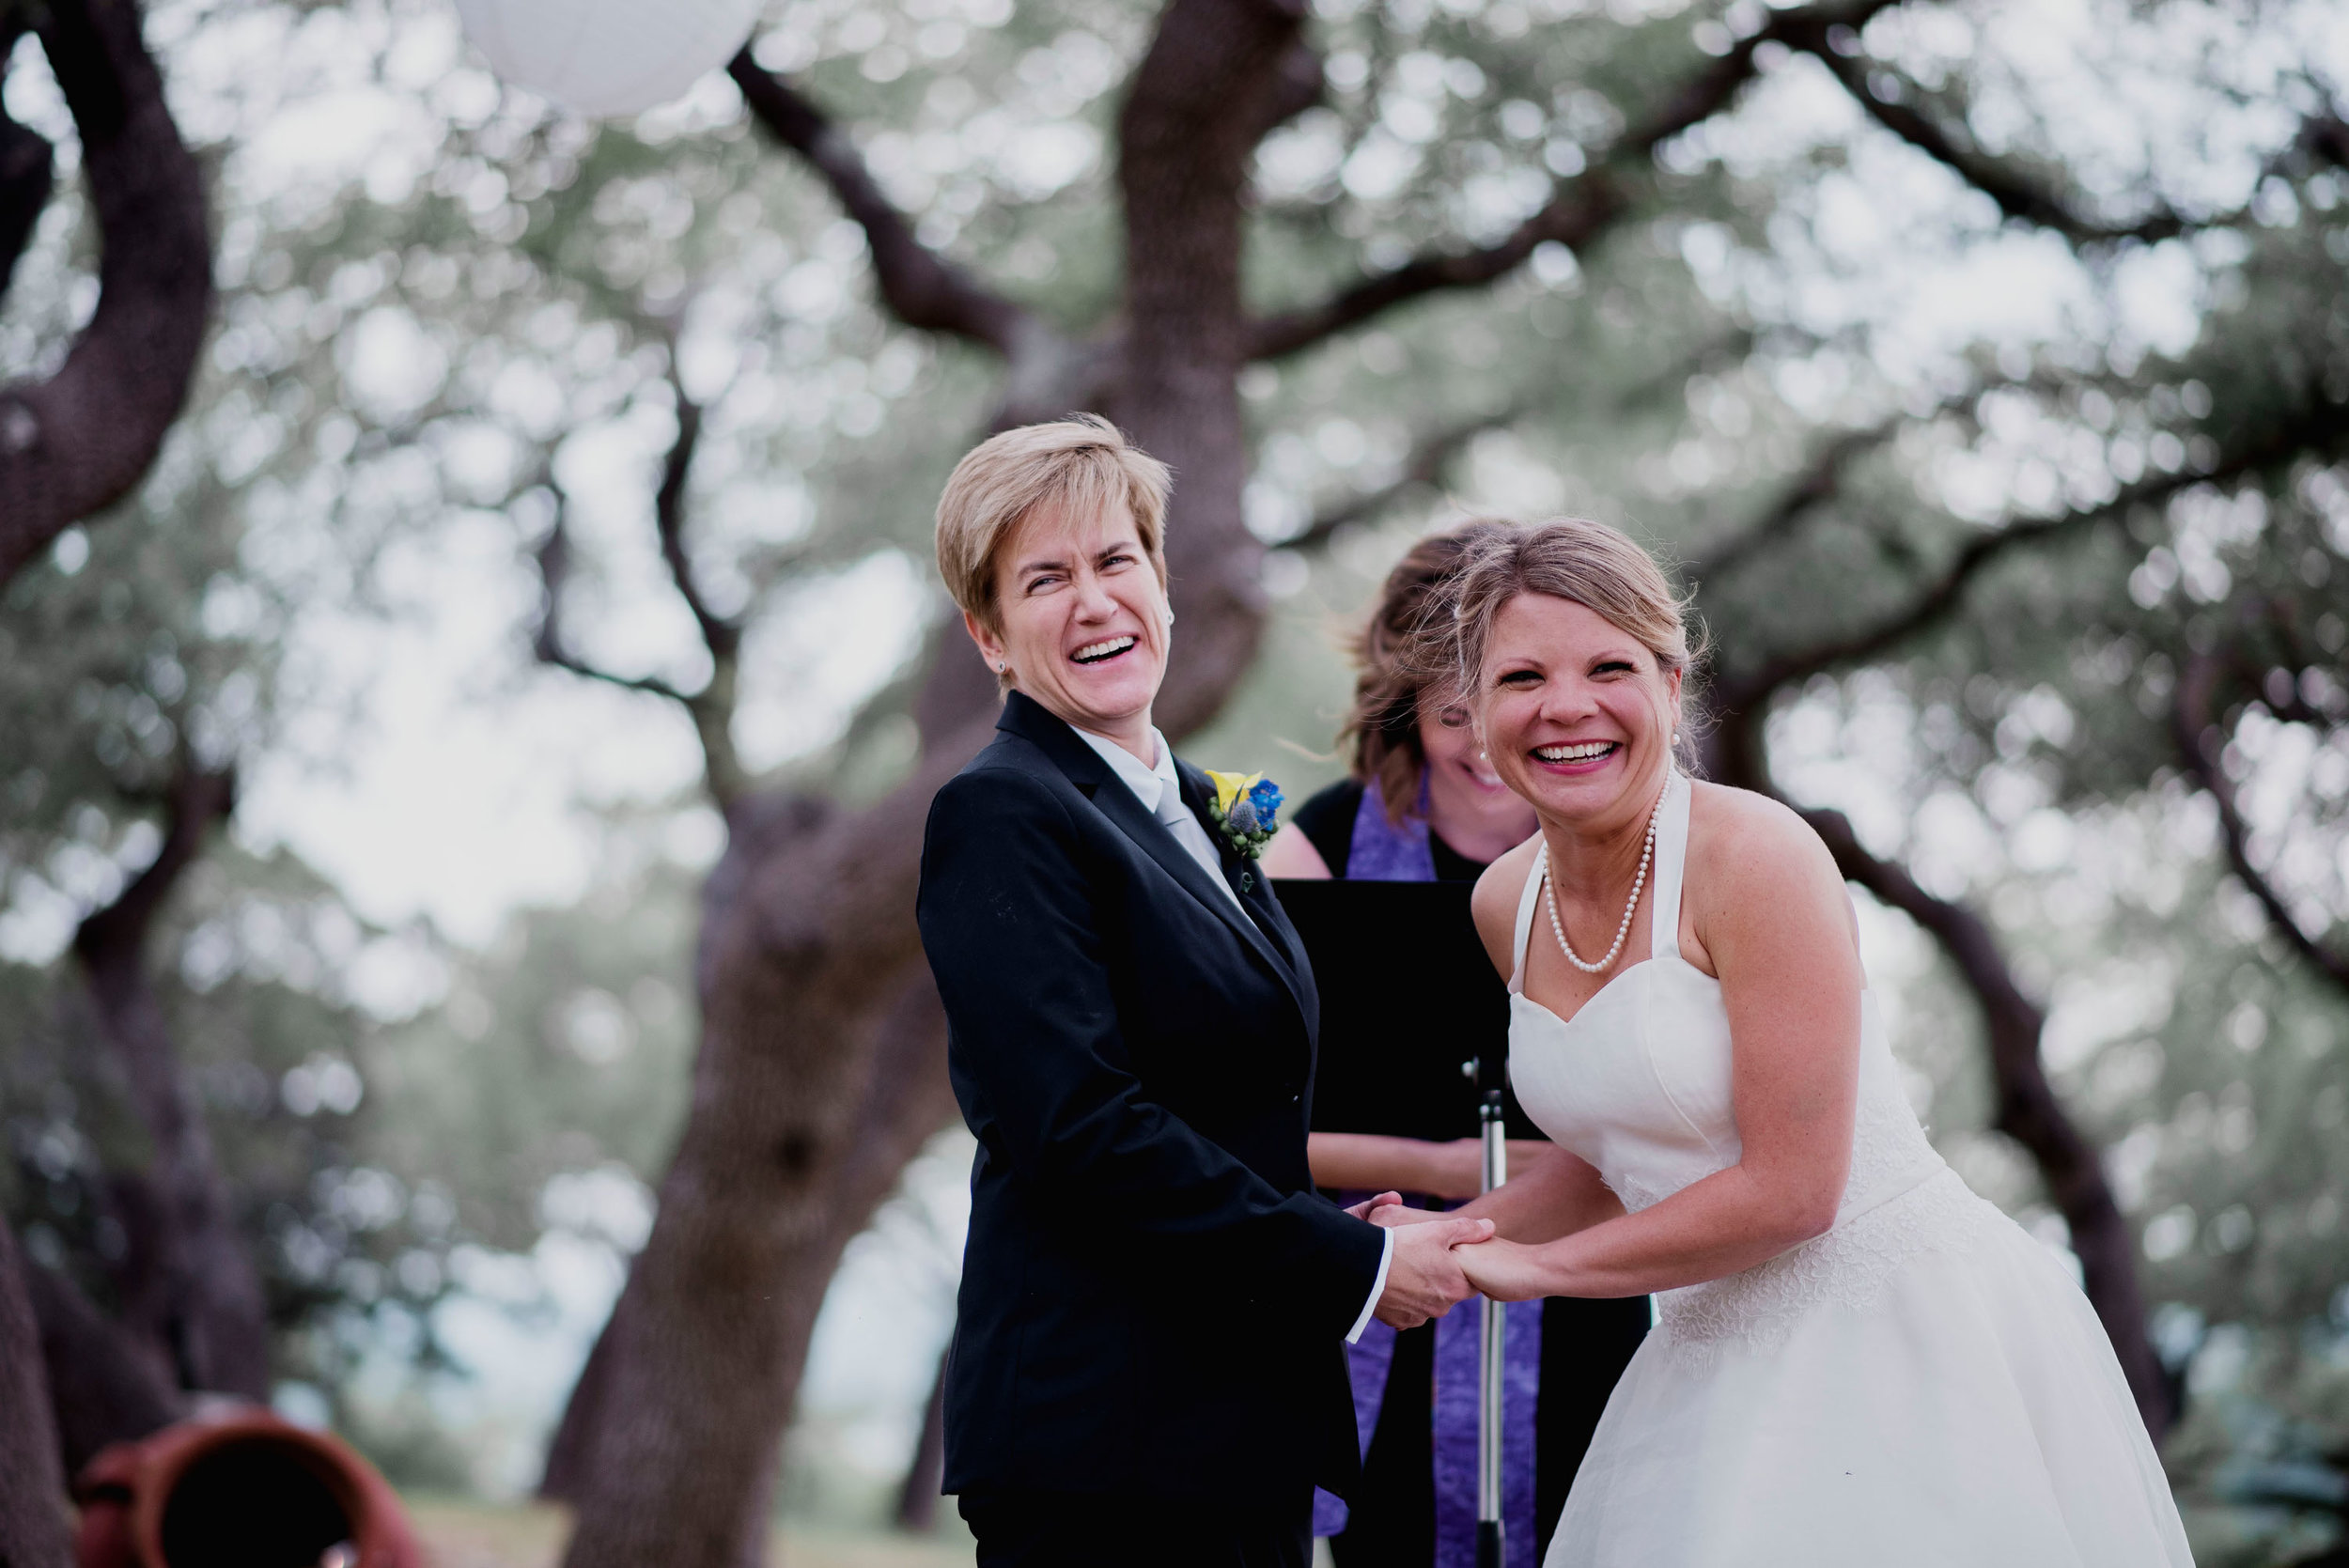 Austin Wedding Photographer Hacienda Del Lago LBGT Elegant032.jpg